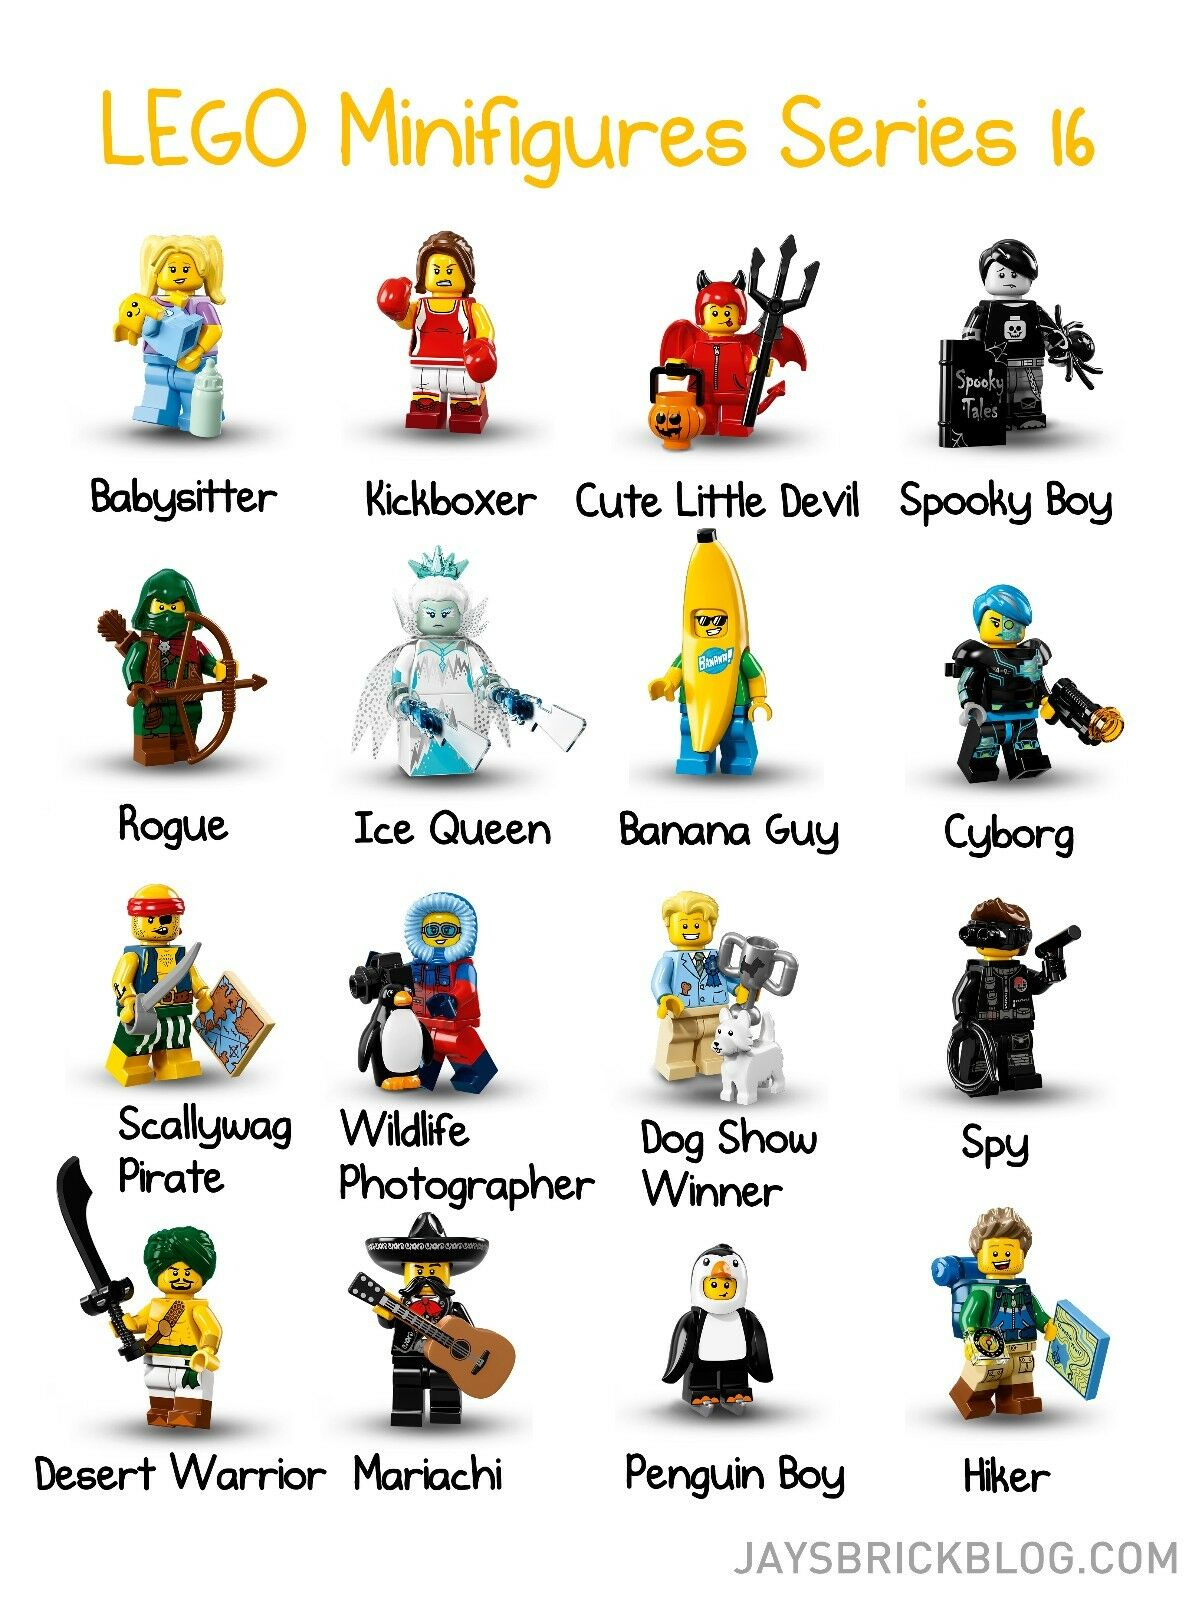 Lego Minifigure Serie 16, complete set with 16 fig, OVP